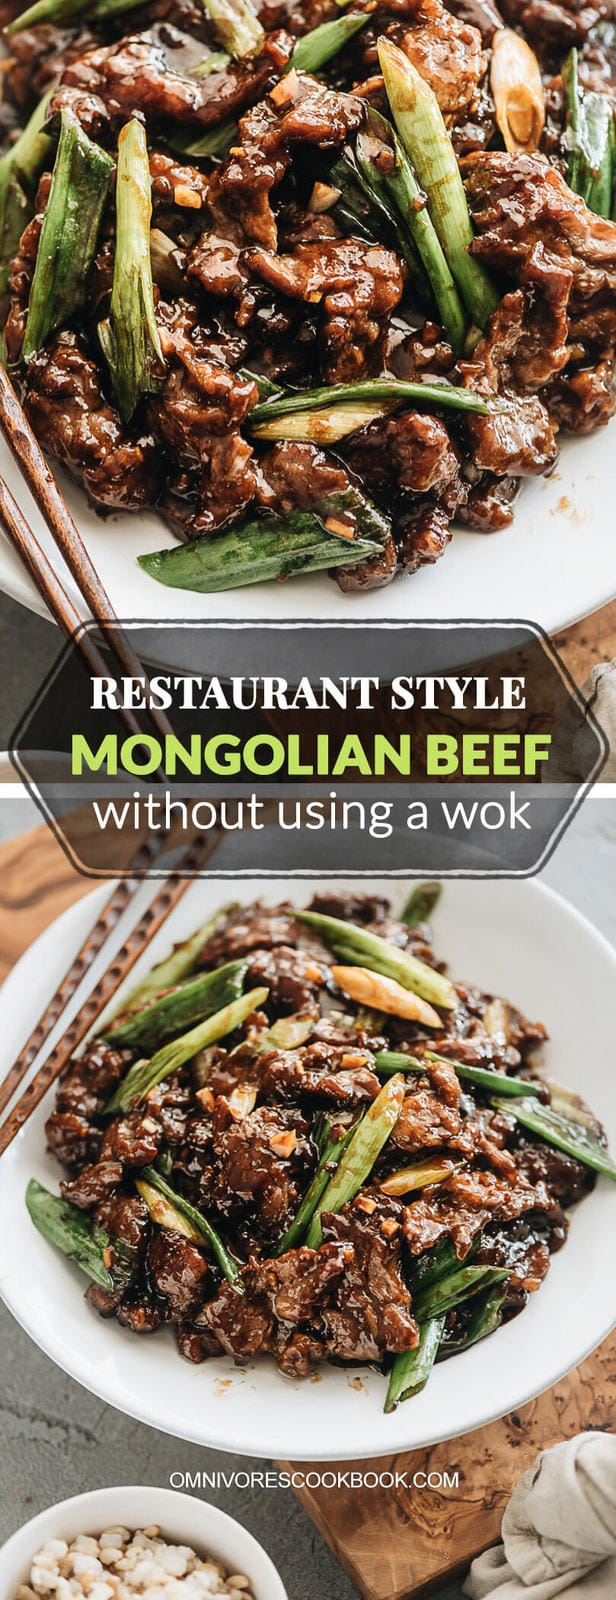 Mongolian Beef - Beautifully caramelized beef with a juicy, tender texture and a gingery, garlicky, sweet sauce make this dish irresistible! You won't believe how easy it is to make this restaurant-style stir fry in your own kitchen without a wok! #recipe #takeout #chinese #asian #glutenfree